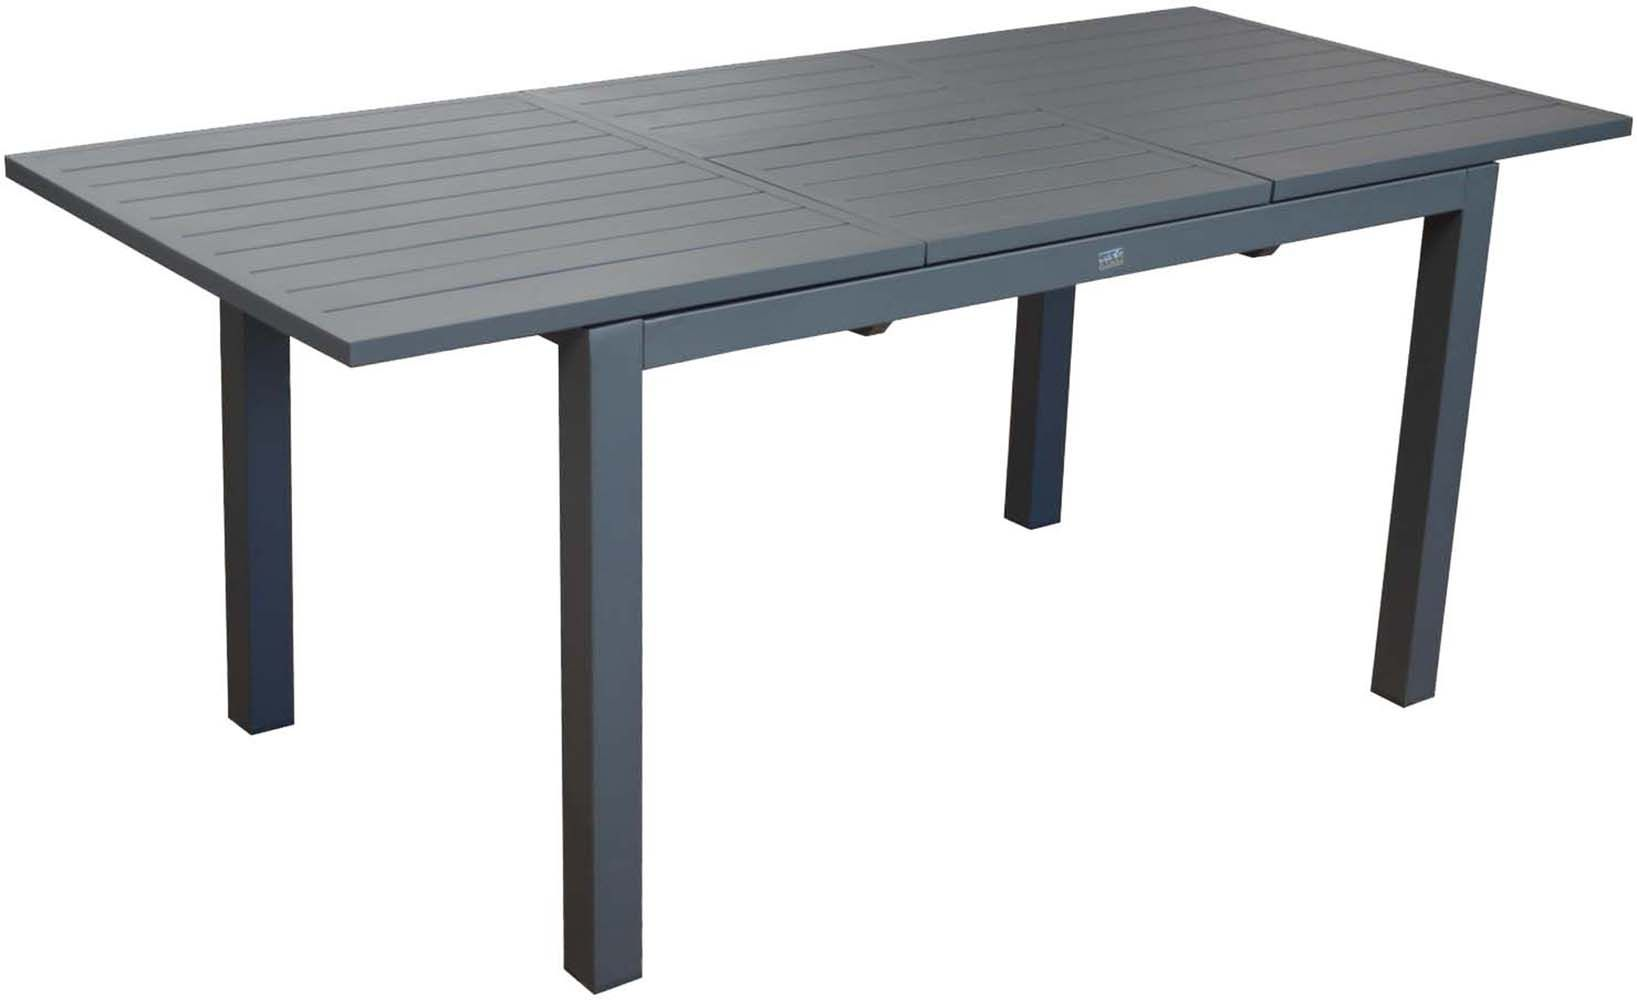 table en aluminium avec allonge trieste 180 cm gris. Black Bedroom Furniture Sets. Home Design Ideas